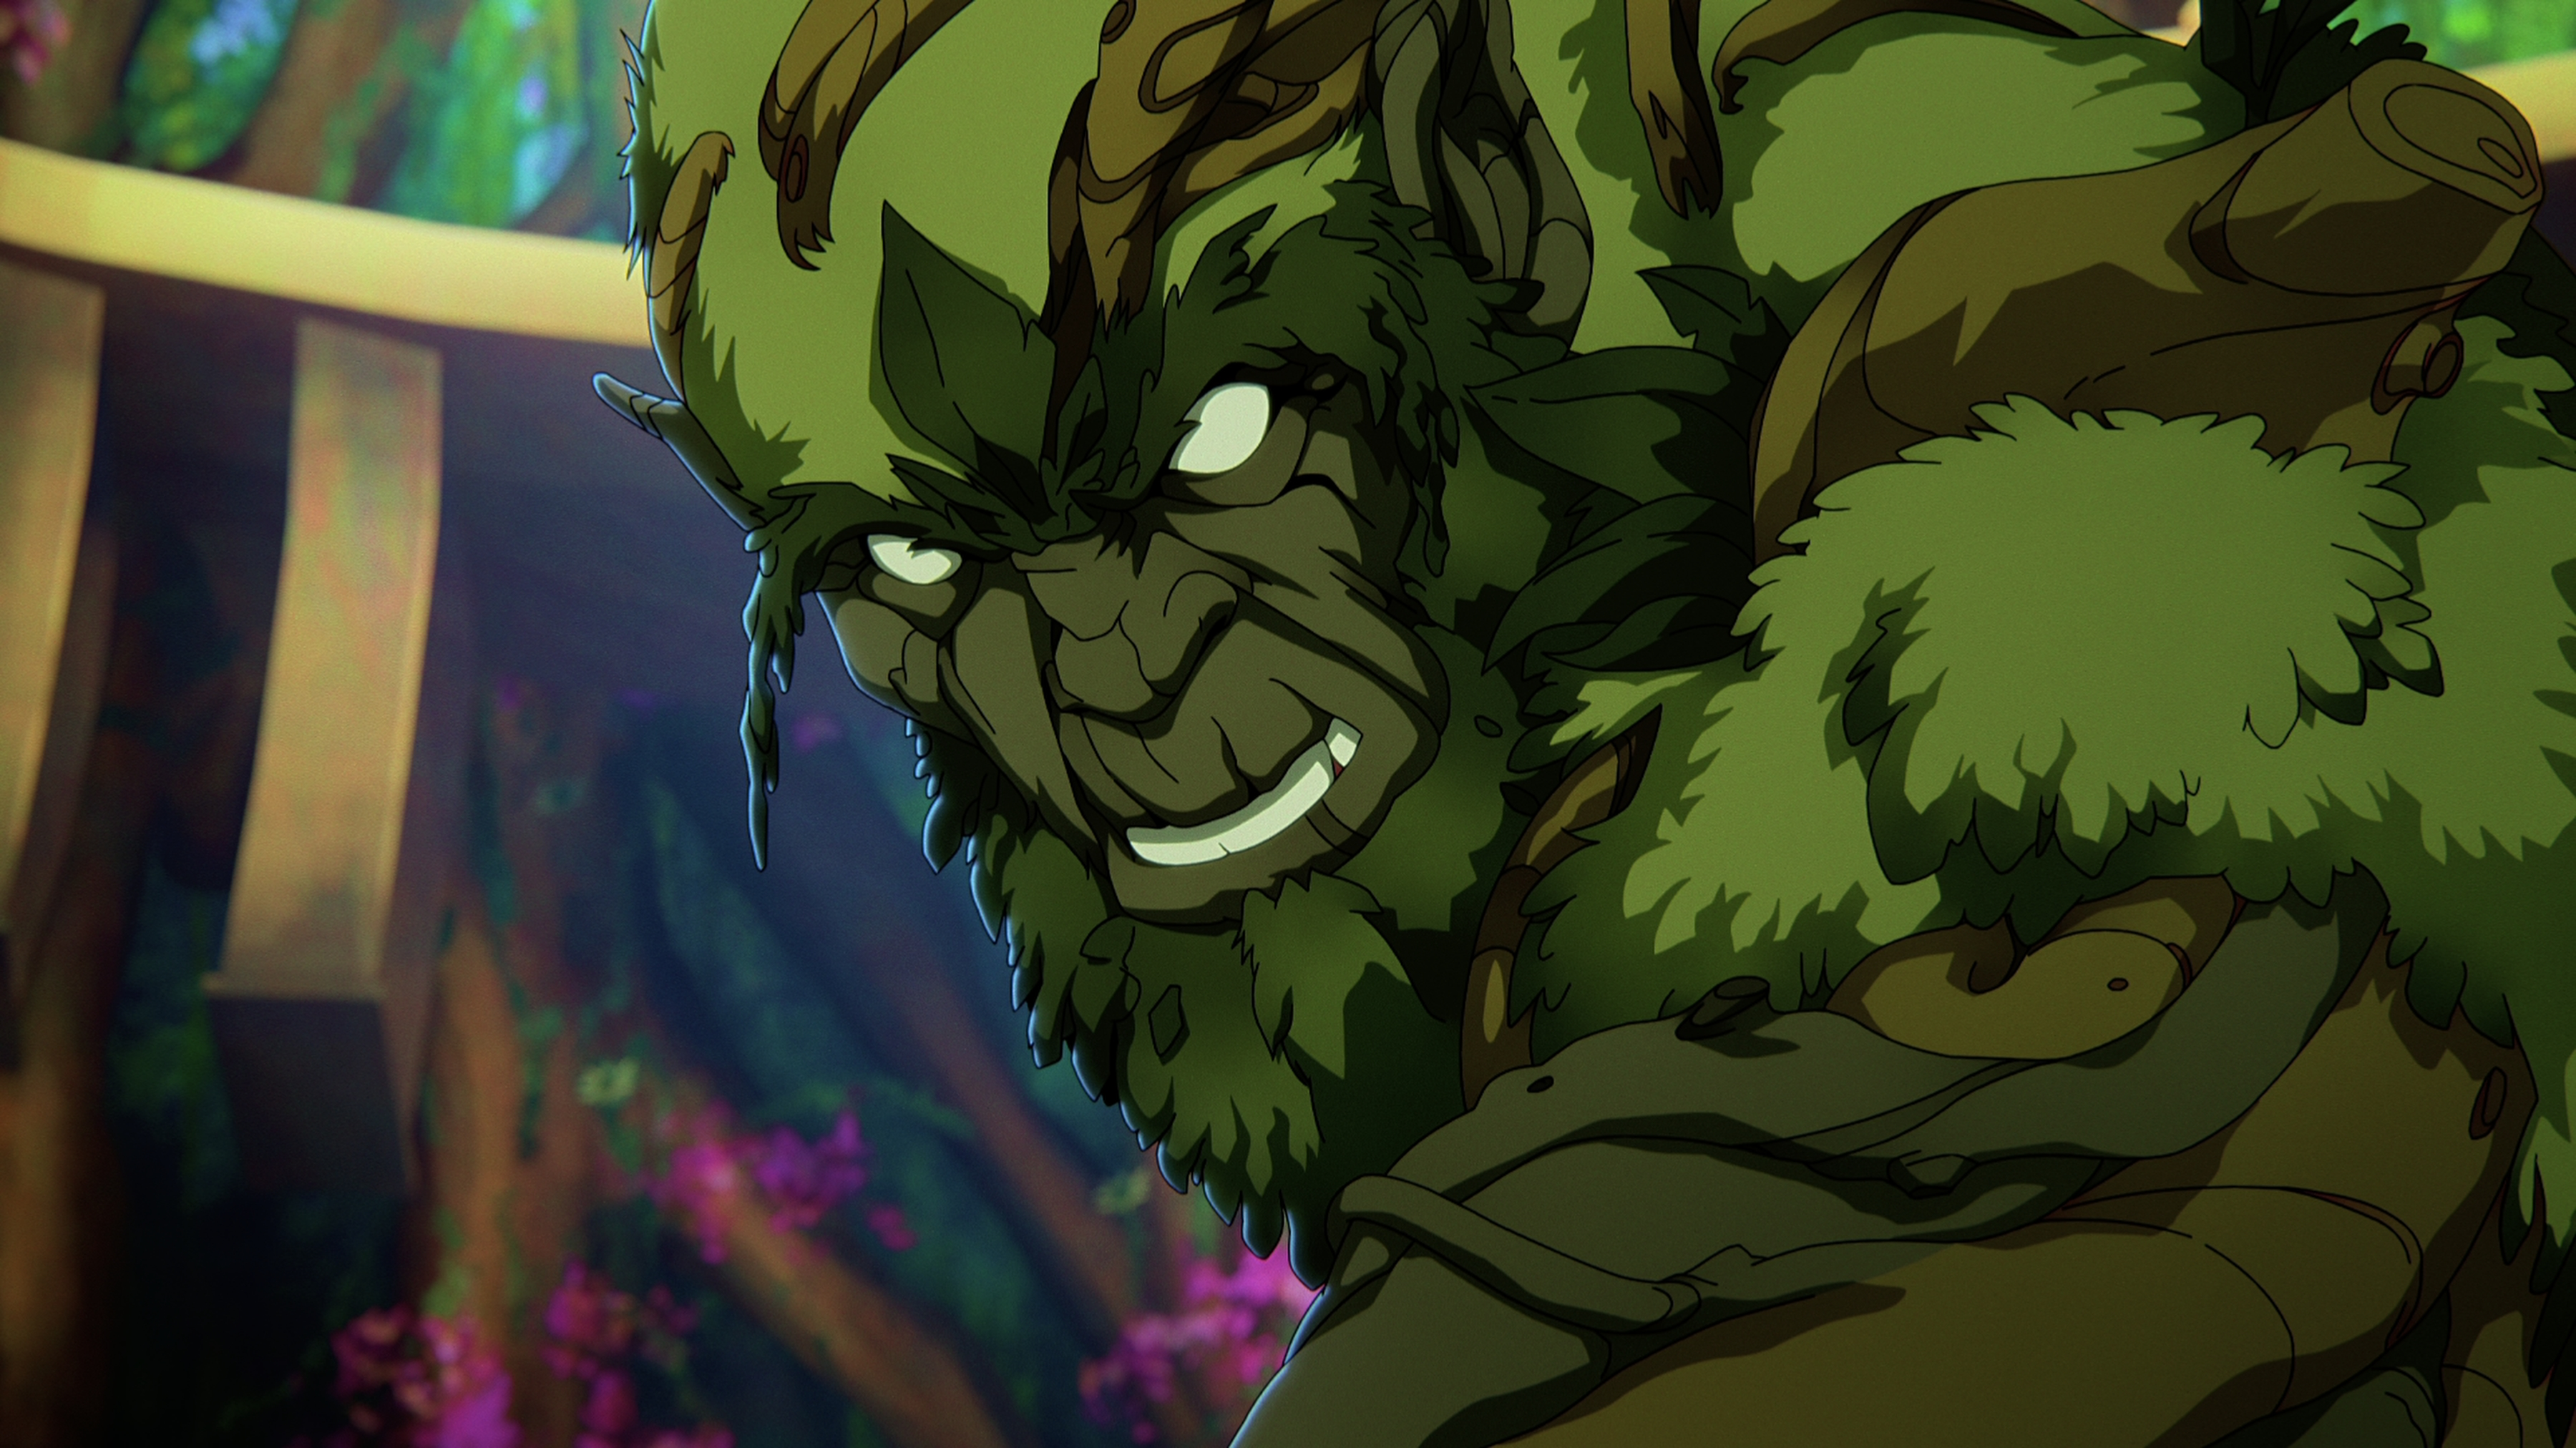 In a CG animated still from Masters of the Universe: Revelation, Moss Man leans down and is surrounded by bright foliage of the forest. He is made up of moss, grass, vines and branches in various shades of green.